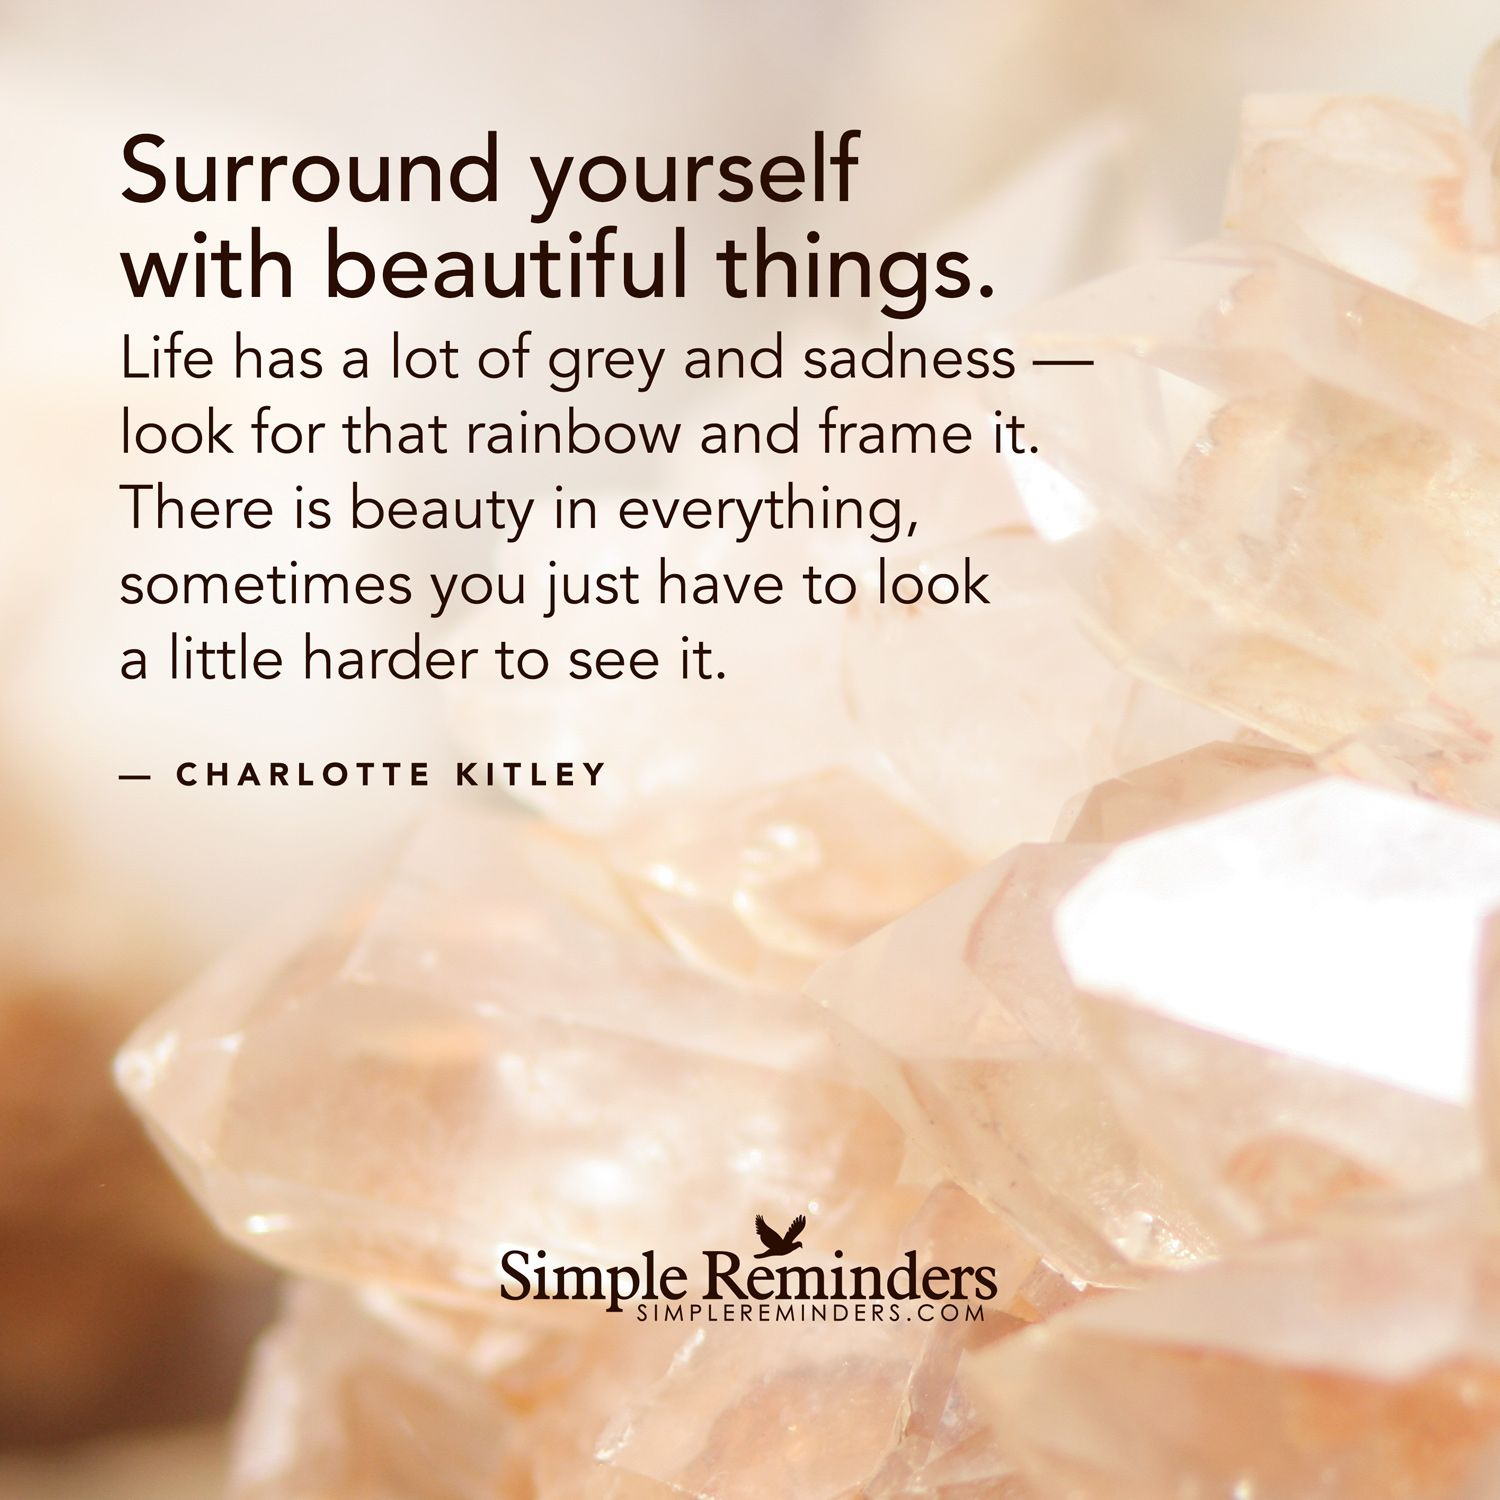 Surround yourself with beautiful things. Life has a lot of